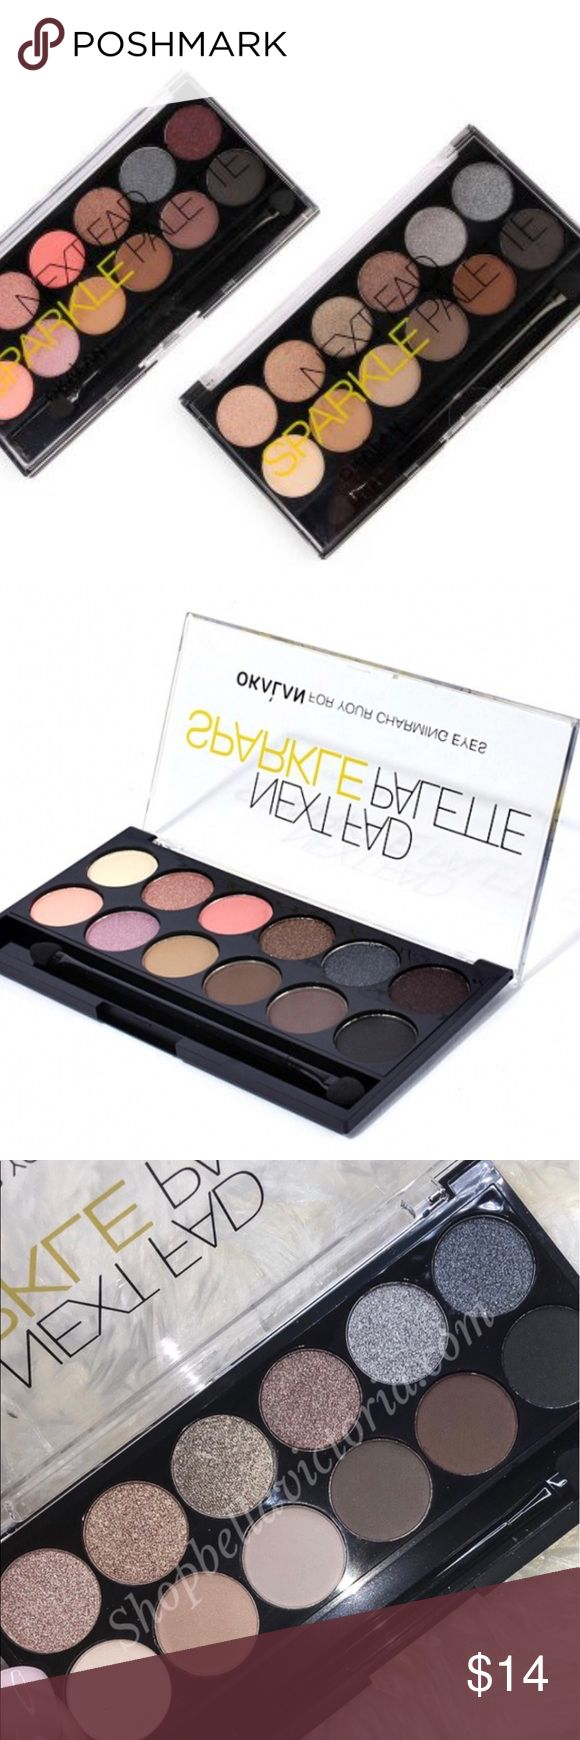 Bundle 2 Okalan Eyeshadow palettes Perfect your peepers with a glamorous touch of sparkle courtesy of this versatile set of eye shadows which boasts both matte and shimmer shades.  Includes 12 shades and dual ended sponge applicator 0.5 oz. Ingredients: mica, talc, paraffium liquidum, magnesium stearate, ethylhexyl palmitate, dimethicone, propylparaben, methylparaben Imported Makeup Eyeshadow